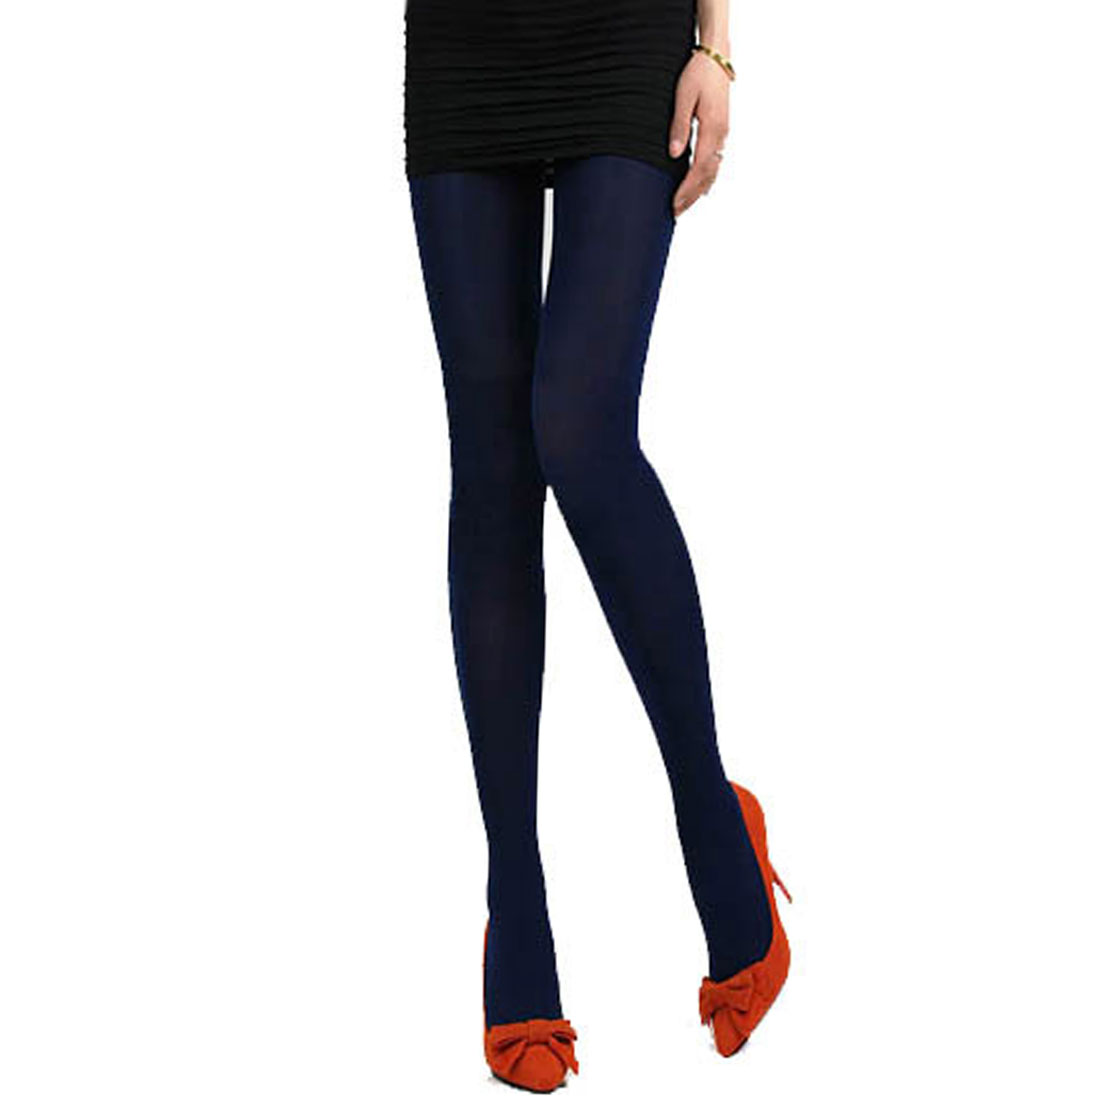 Woman Dark Blue Slim Fit Stretchy Winter Leggings Footed Pantyhose Pants XS